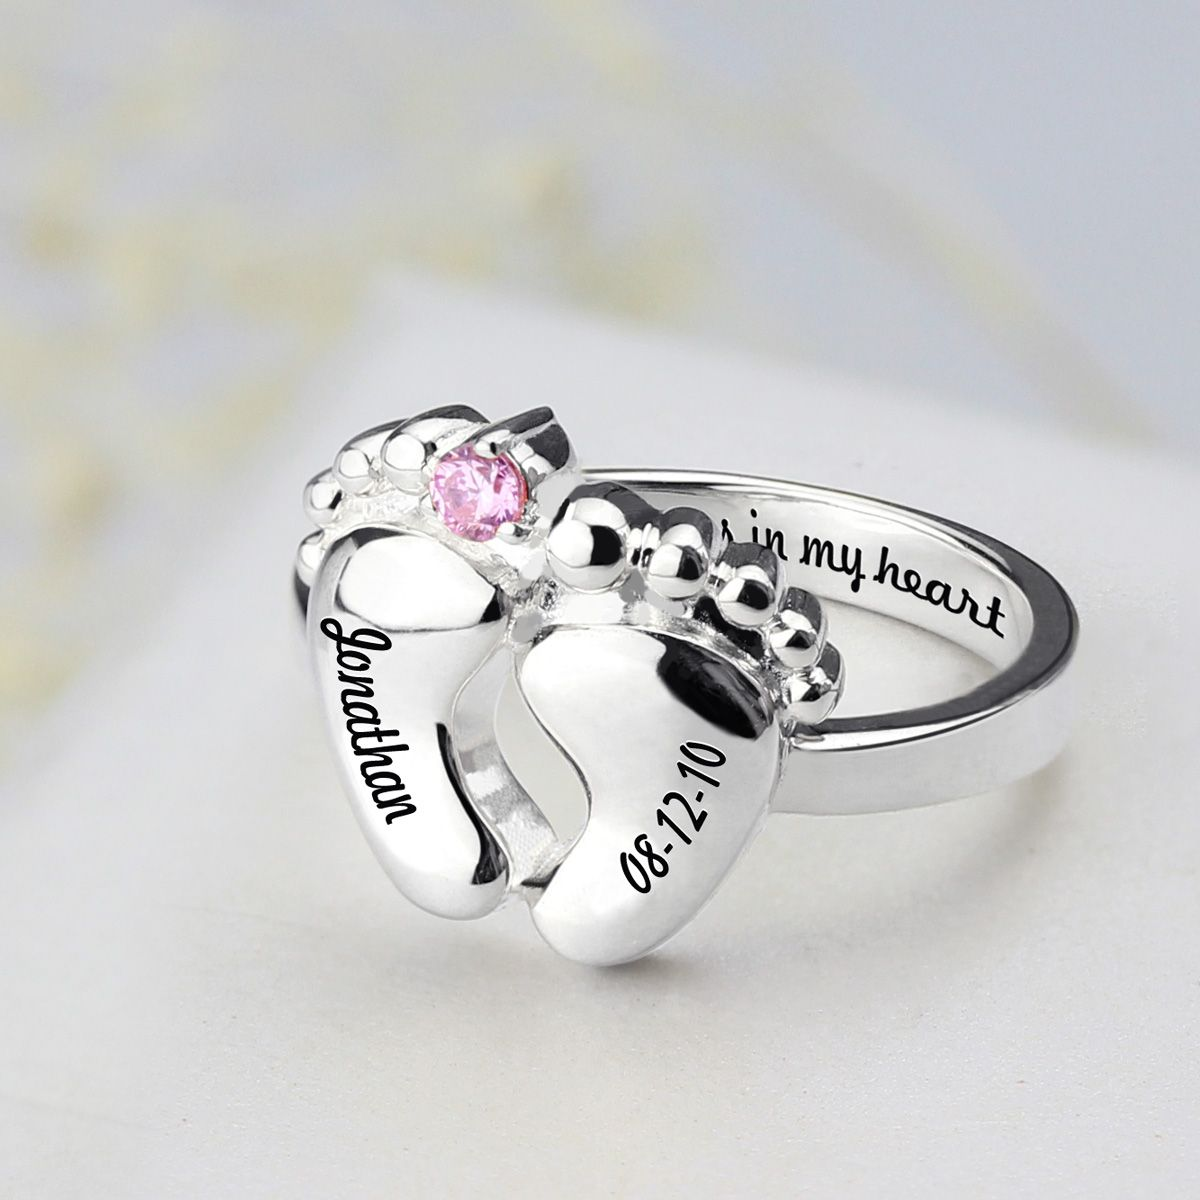 pendant for diy charm charms get aliexpress baby rings shipping on w and love free wholesale new bracelets footprint silver com fit sterling buy heart dangle